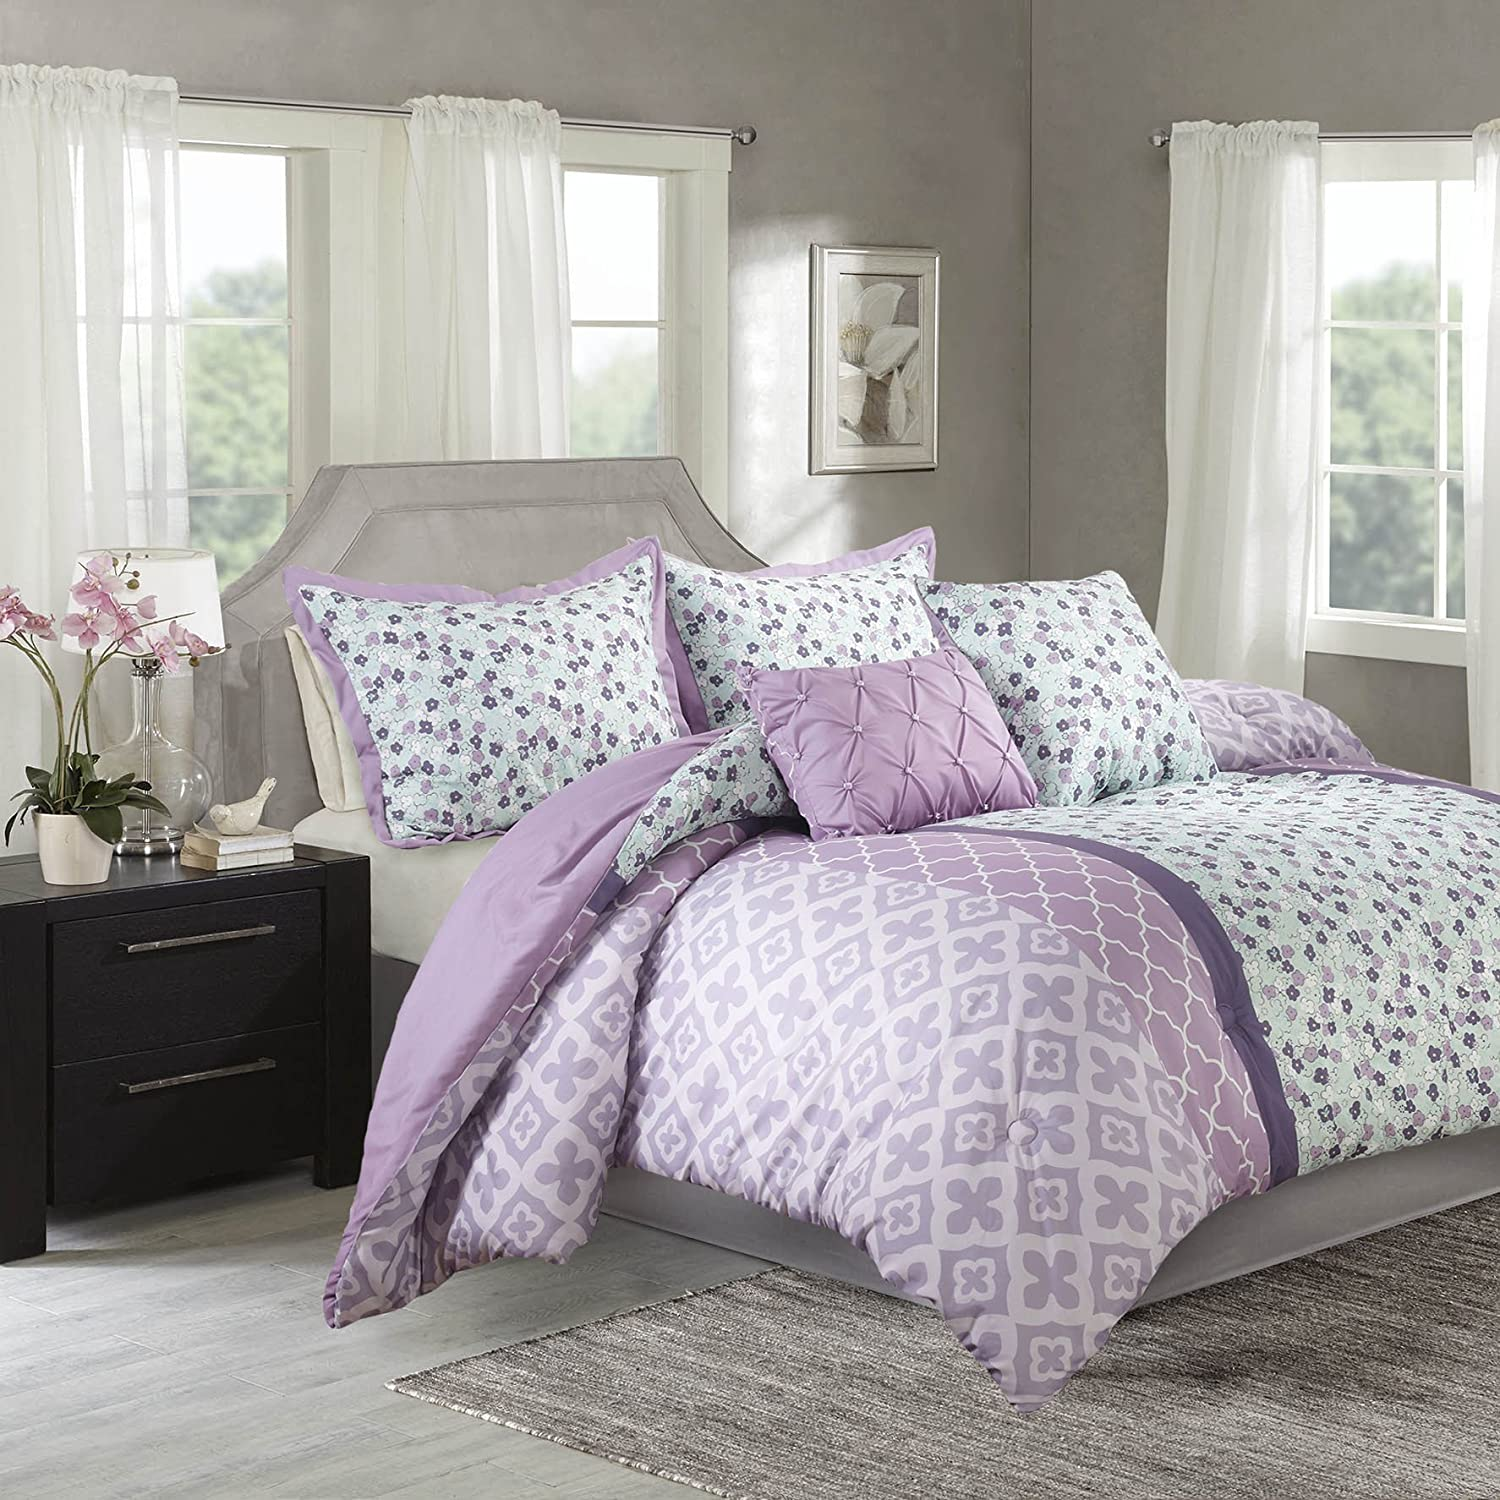 Amazon Com Comforter Sets For Teen Girls Purple Bedding Full Queen Twin Adorable Lavender Mint Green Bedspread Reversible Set Bundle Includes Sleep Mask From Designer Home Twin Home Kitchen